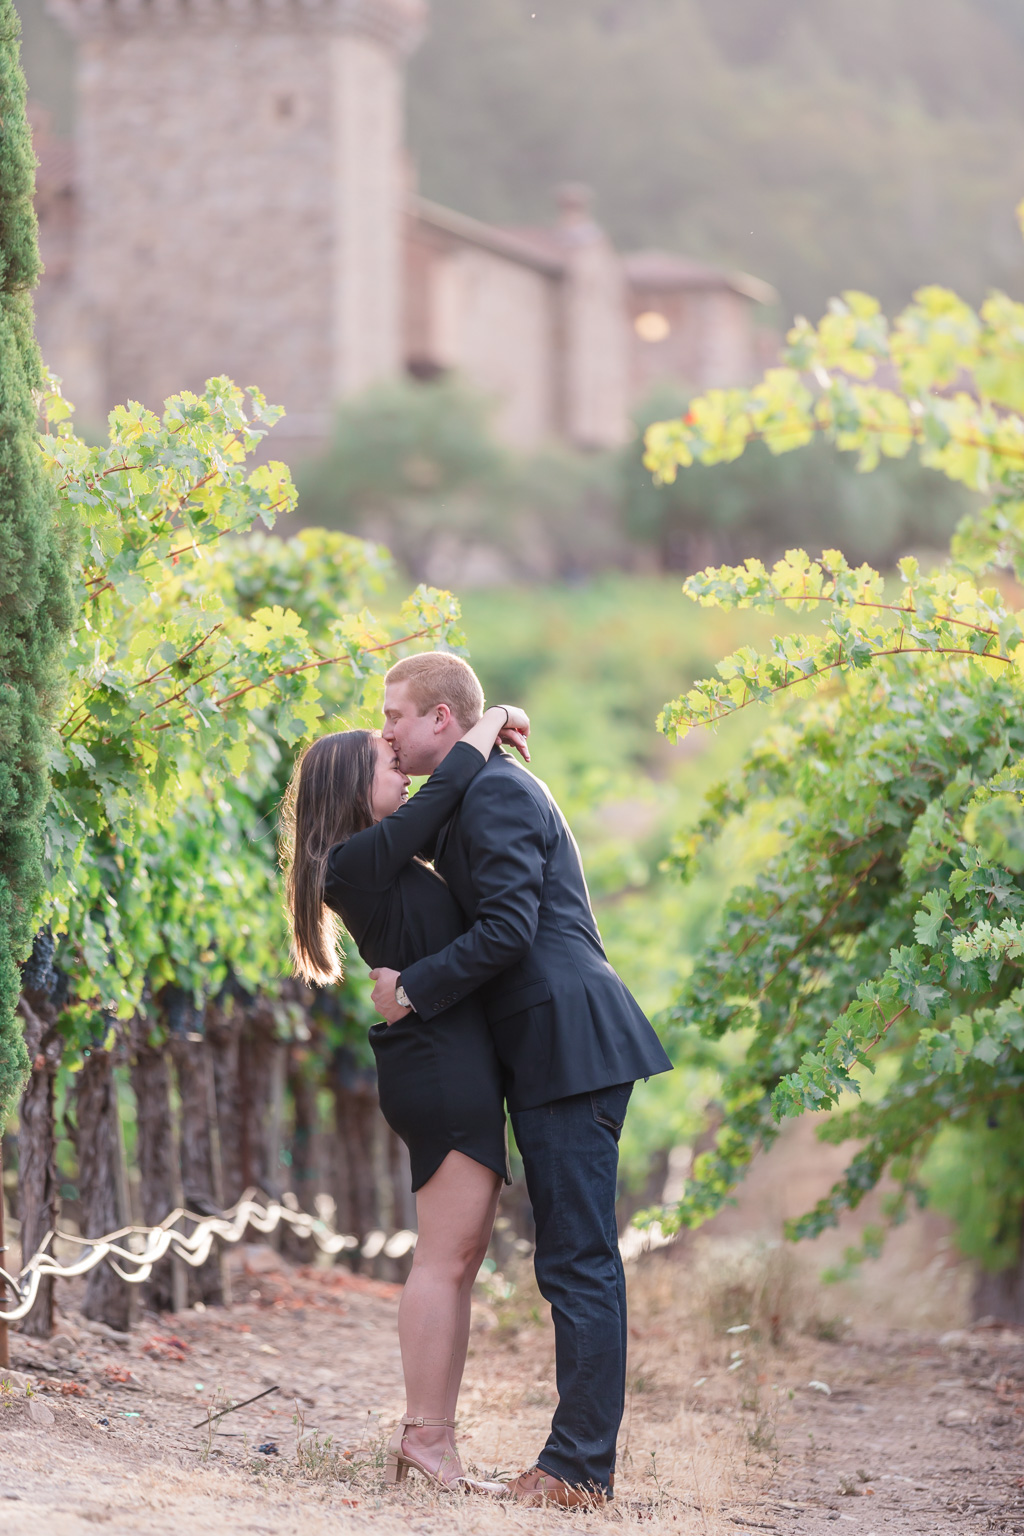 grand Napa castle winery makes the perfect backdrop for a surprise engagement